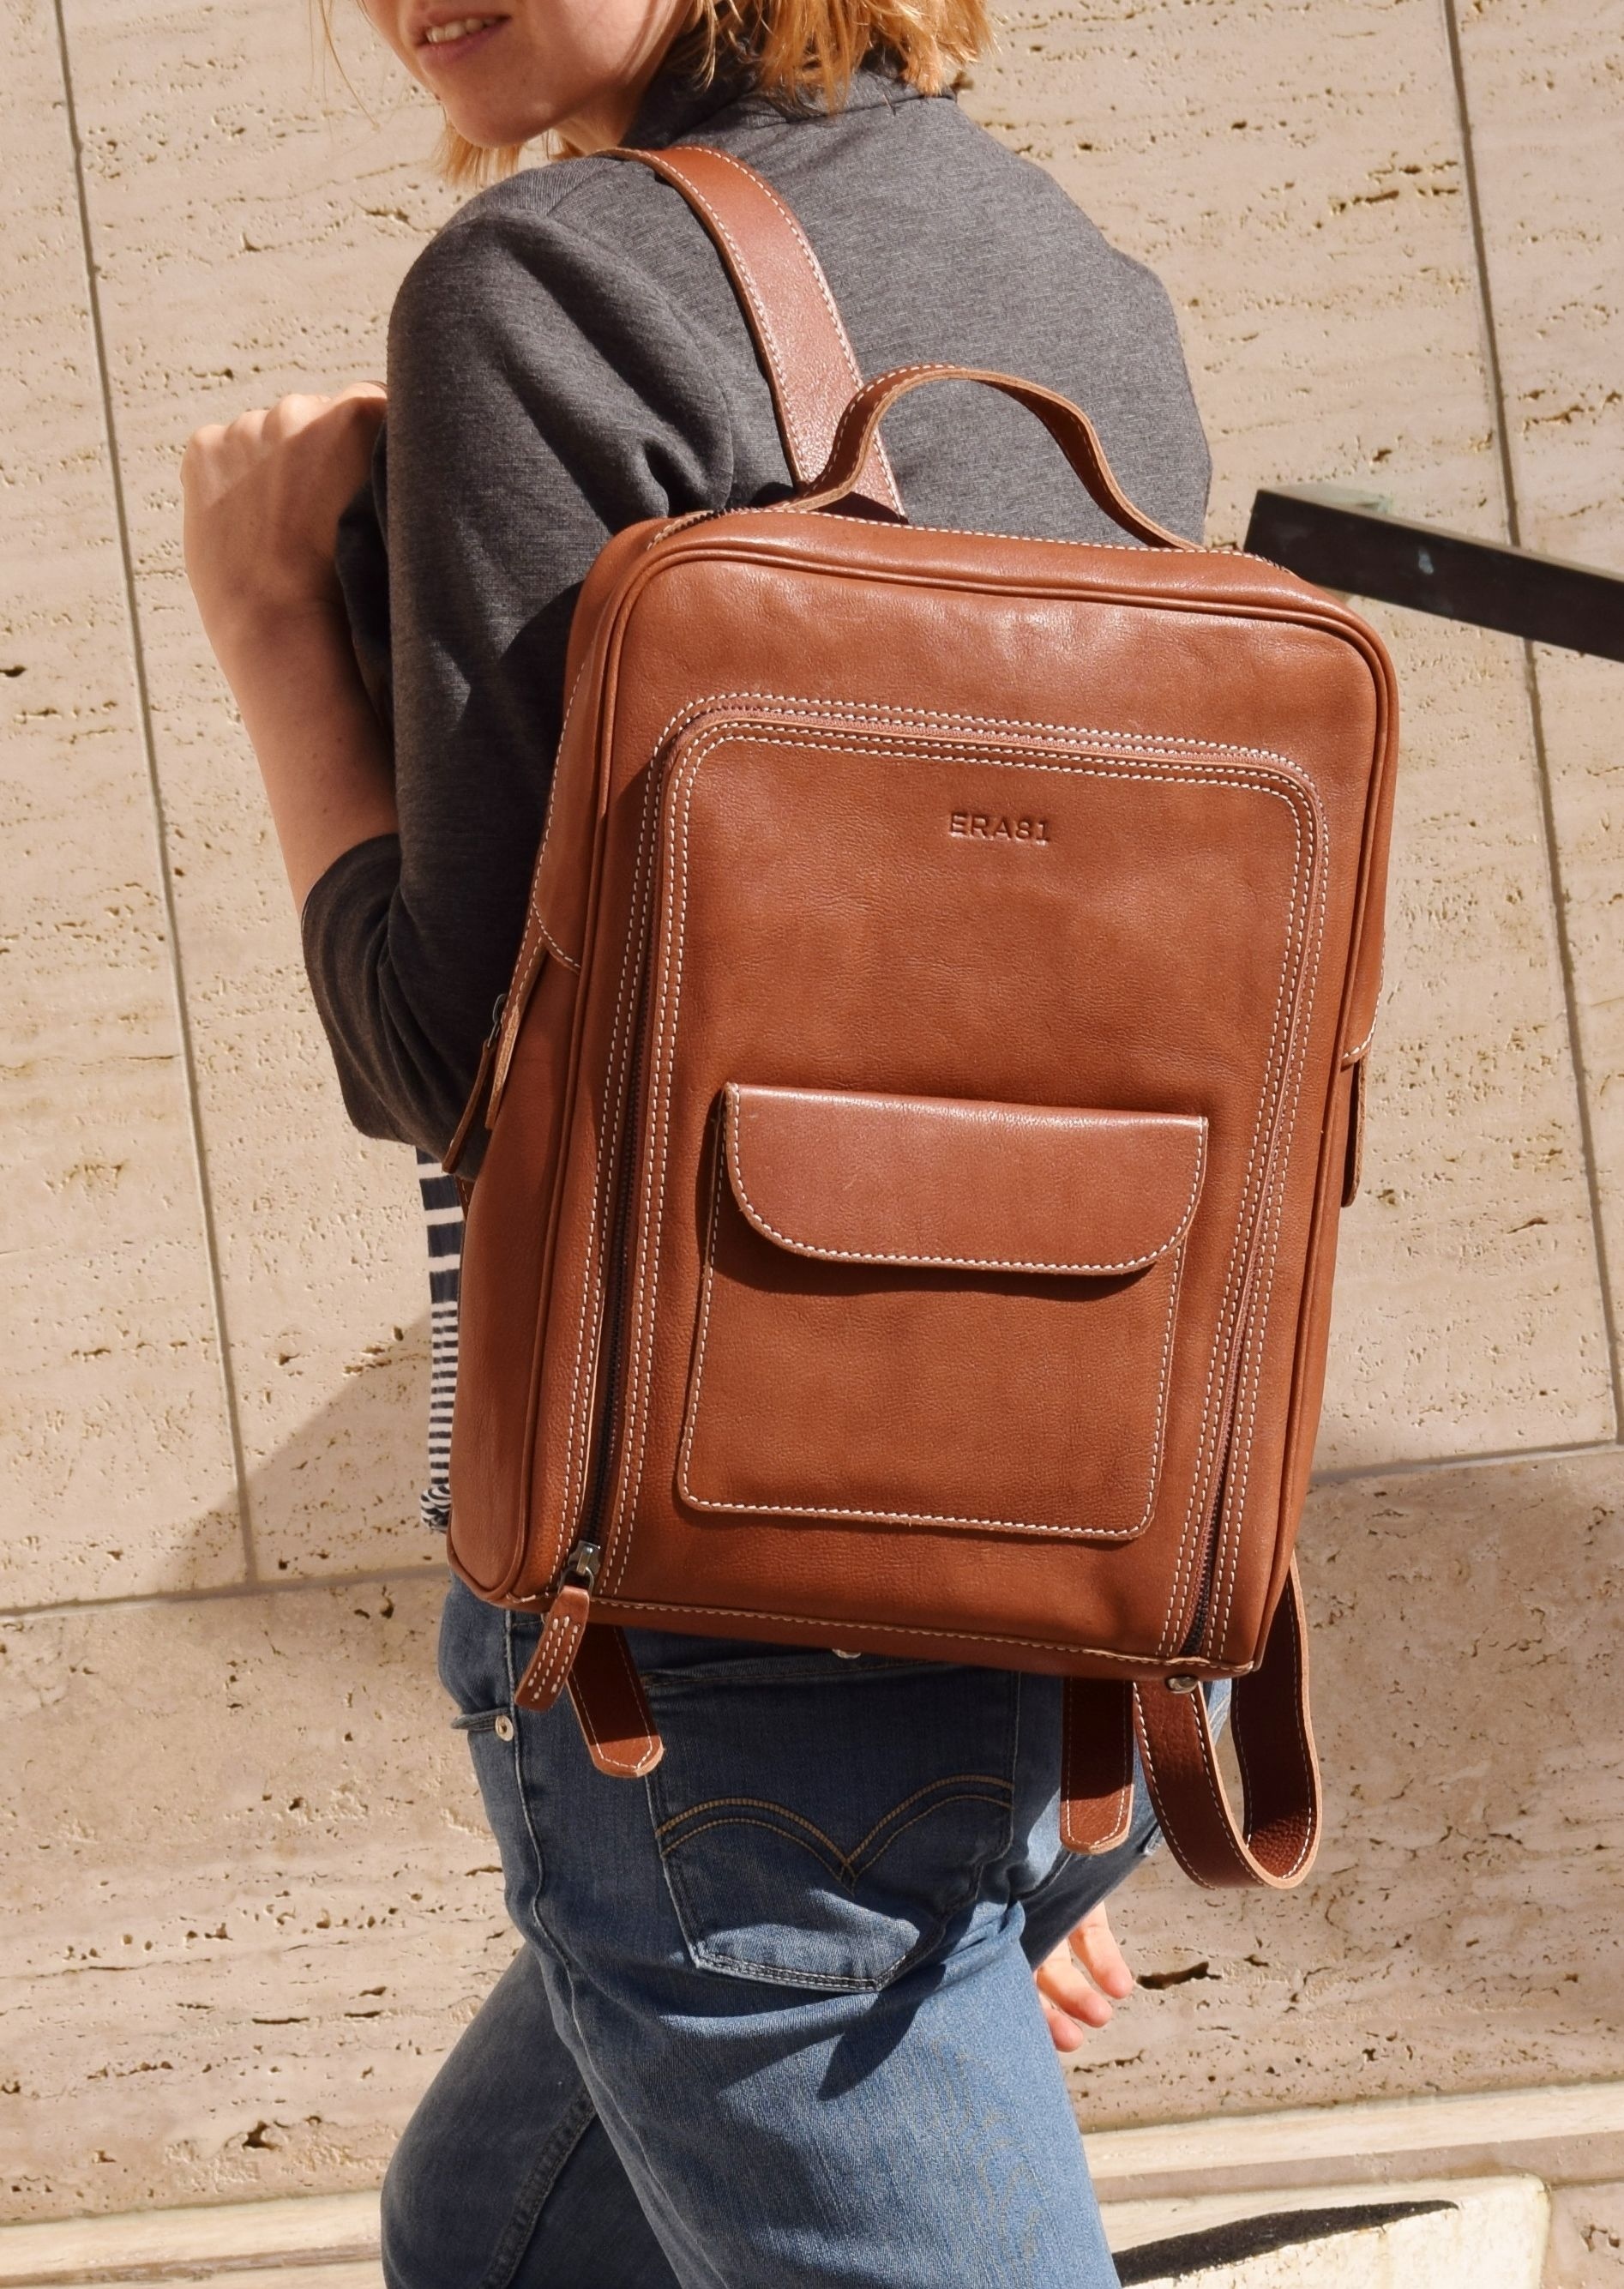 matt and nat faux leather laptop backpack Alternate Product Image ...